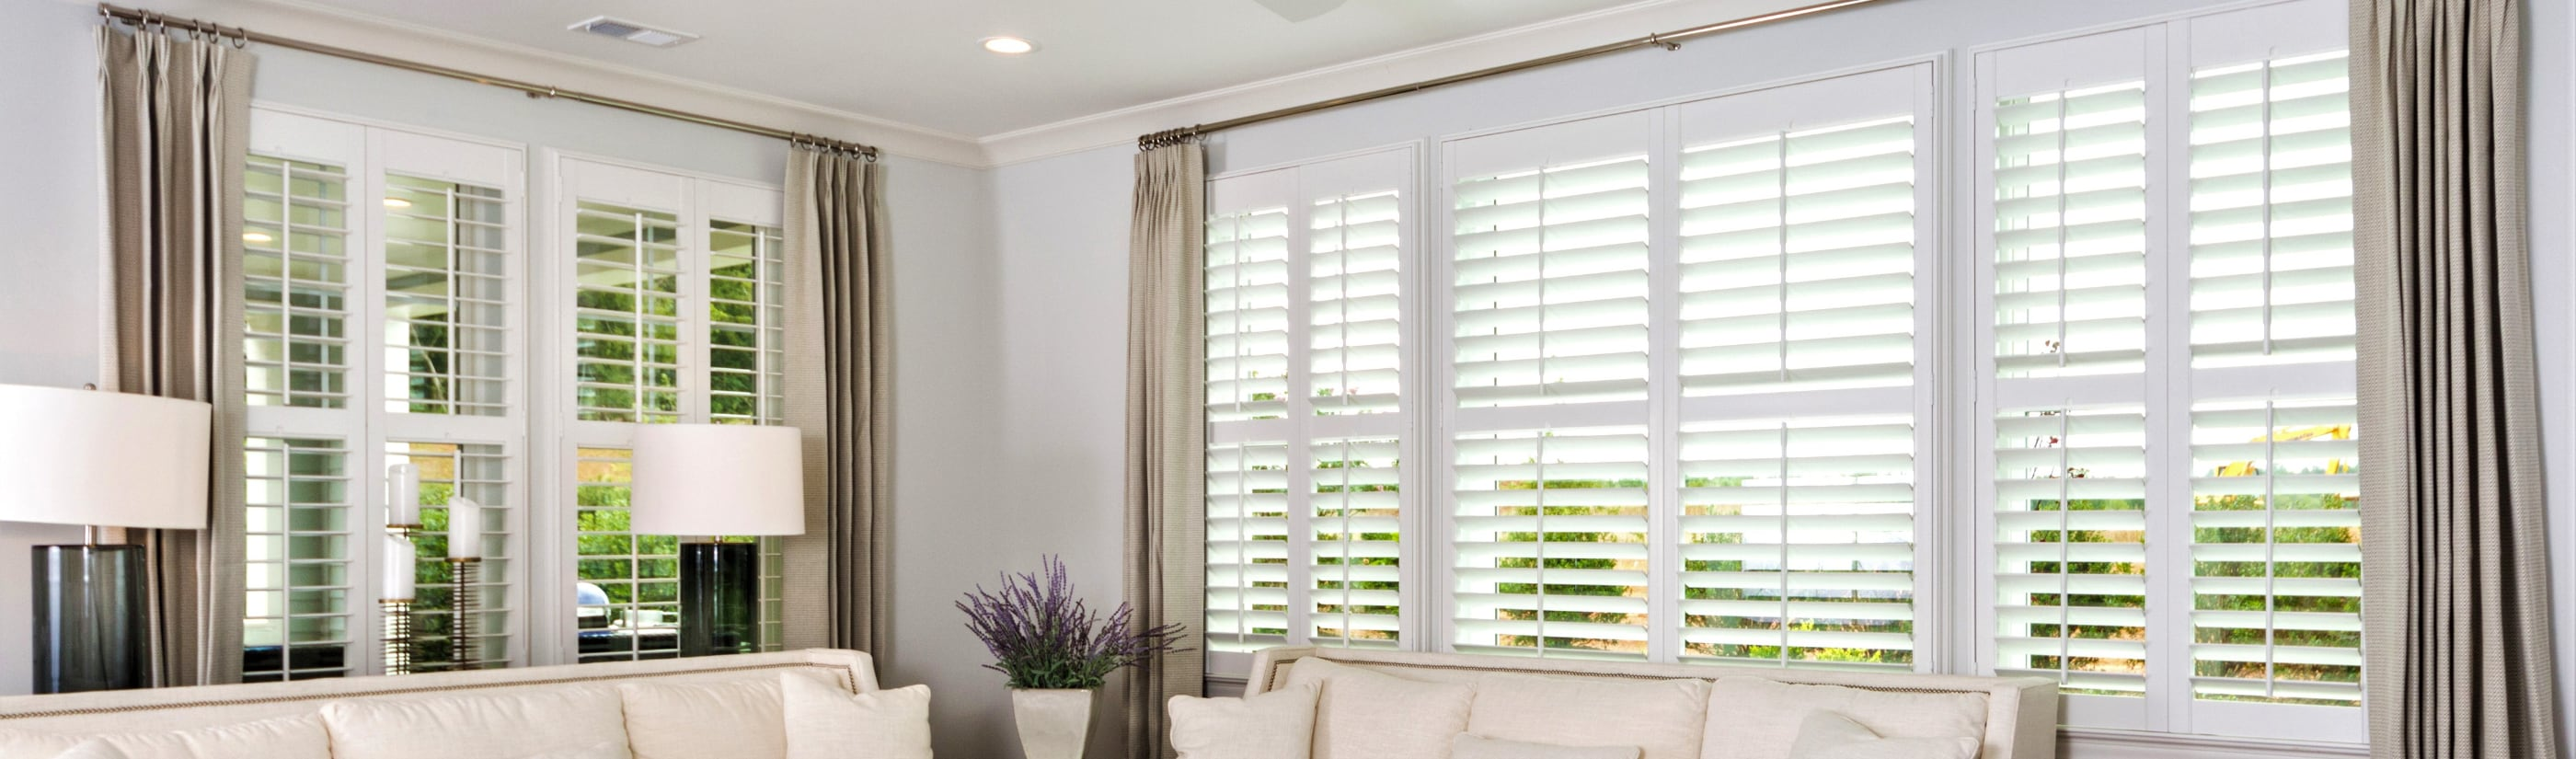 Polywood Shutters Paints In San Antonio